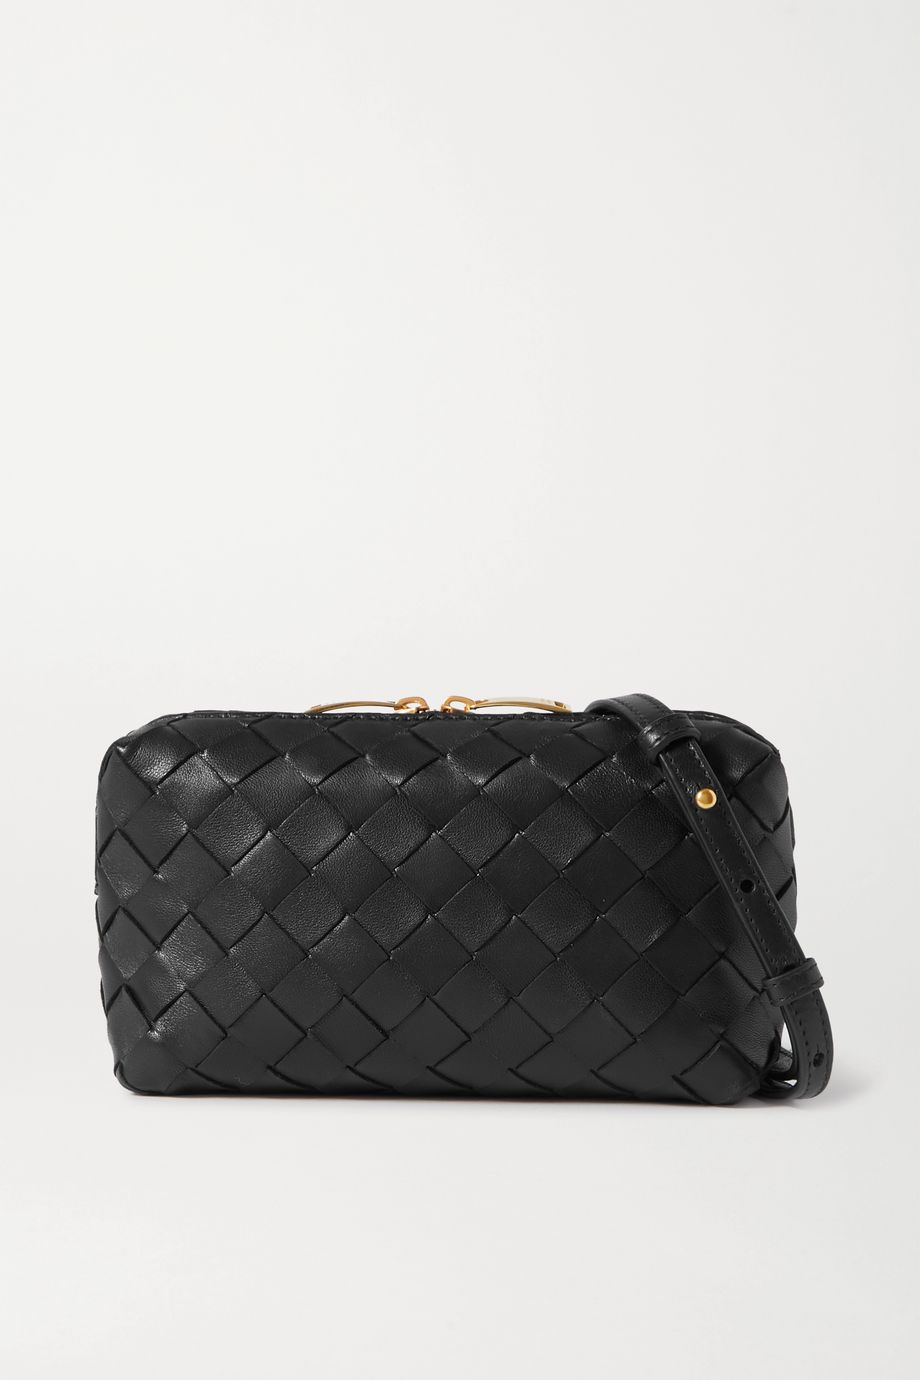 Bottega Veneta Small intrecciato leather shoulder bag